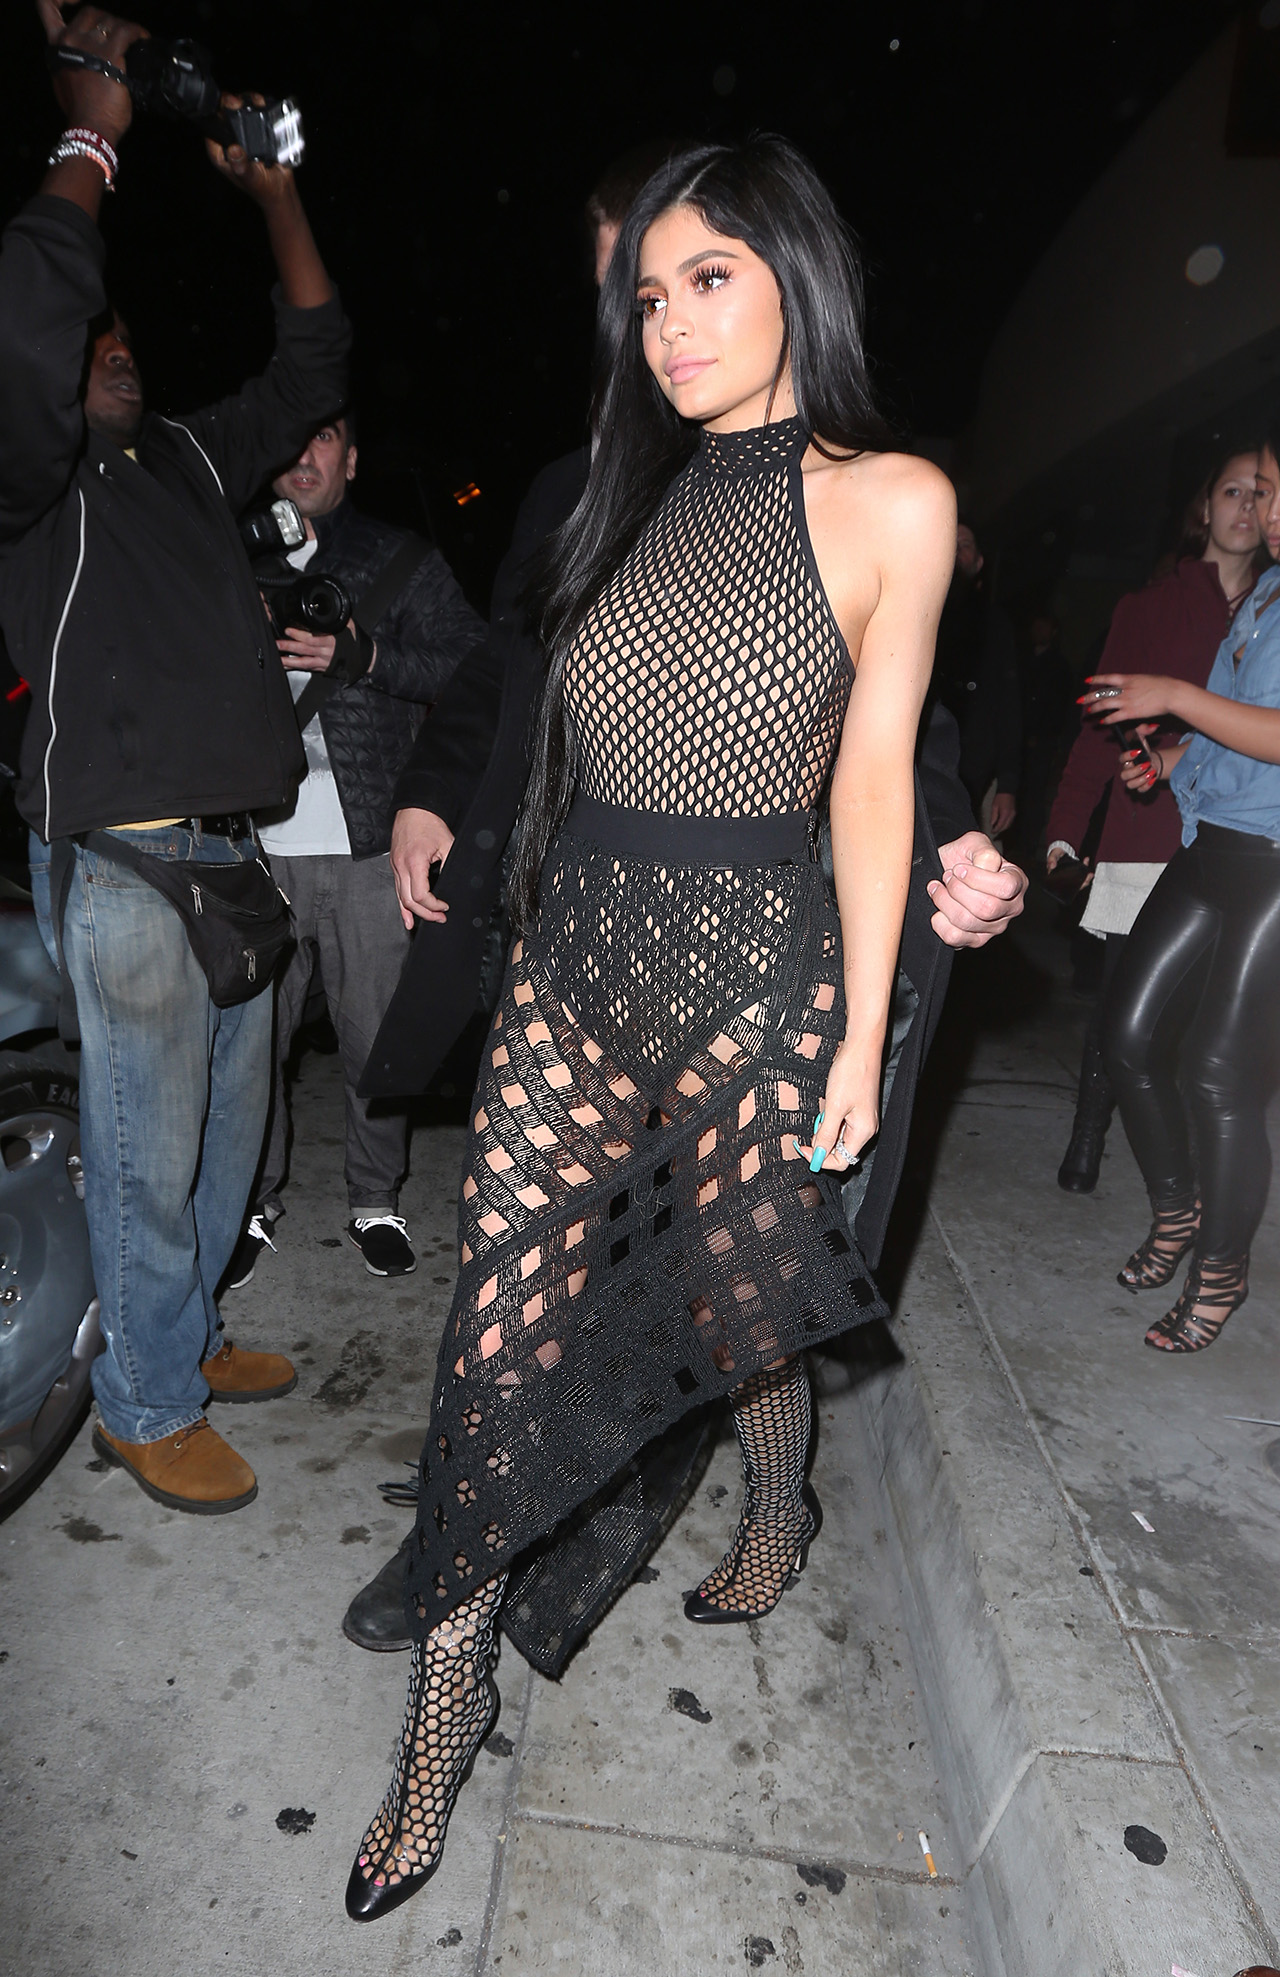 Kylie Jenner displays her curves in a sheer black dress as she leaves Catch restaurant in West Hollywood. <P> Pictured: Kylie Jenner <B>Ref: SPL1460406  110317  </B><BR/> Picture by: Photographer Group / Splash News<BR/> </P><P> <B>Splash News and Pictures</B><BR/> Los Angeles:310-821-2666<BR/> New York:212-619-2666<BR/> London:870-934-2666<BR/> photodesk@splashnews.com<BR/> </P>